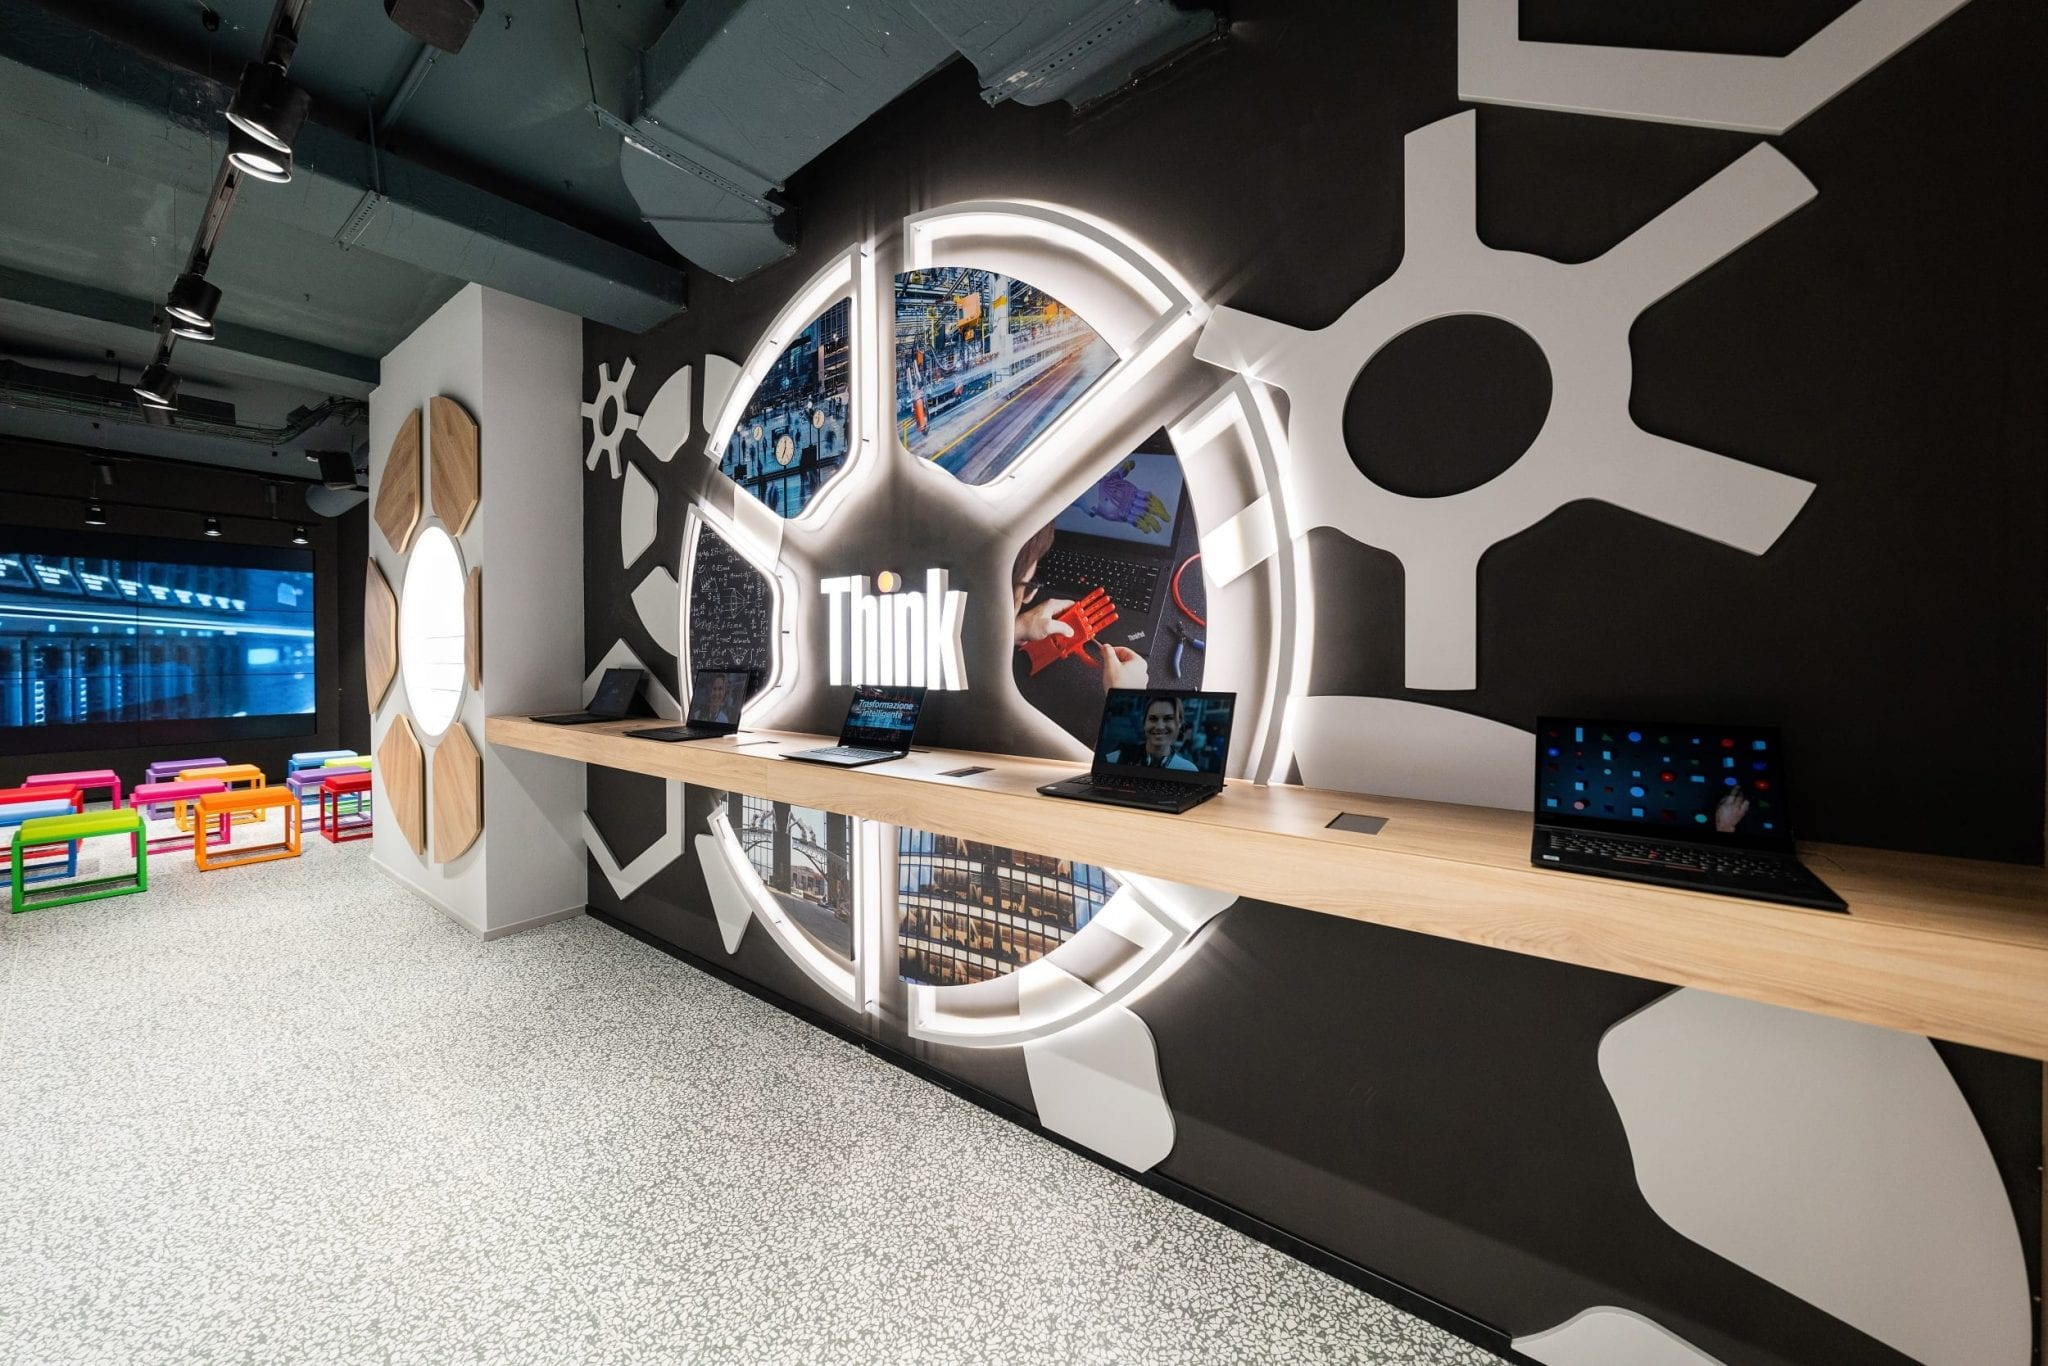 Spazio Lenovo concept store interior showing Think-branded devices and an open auditorium and workspace